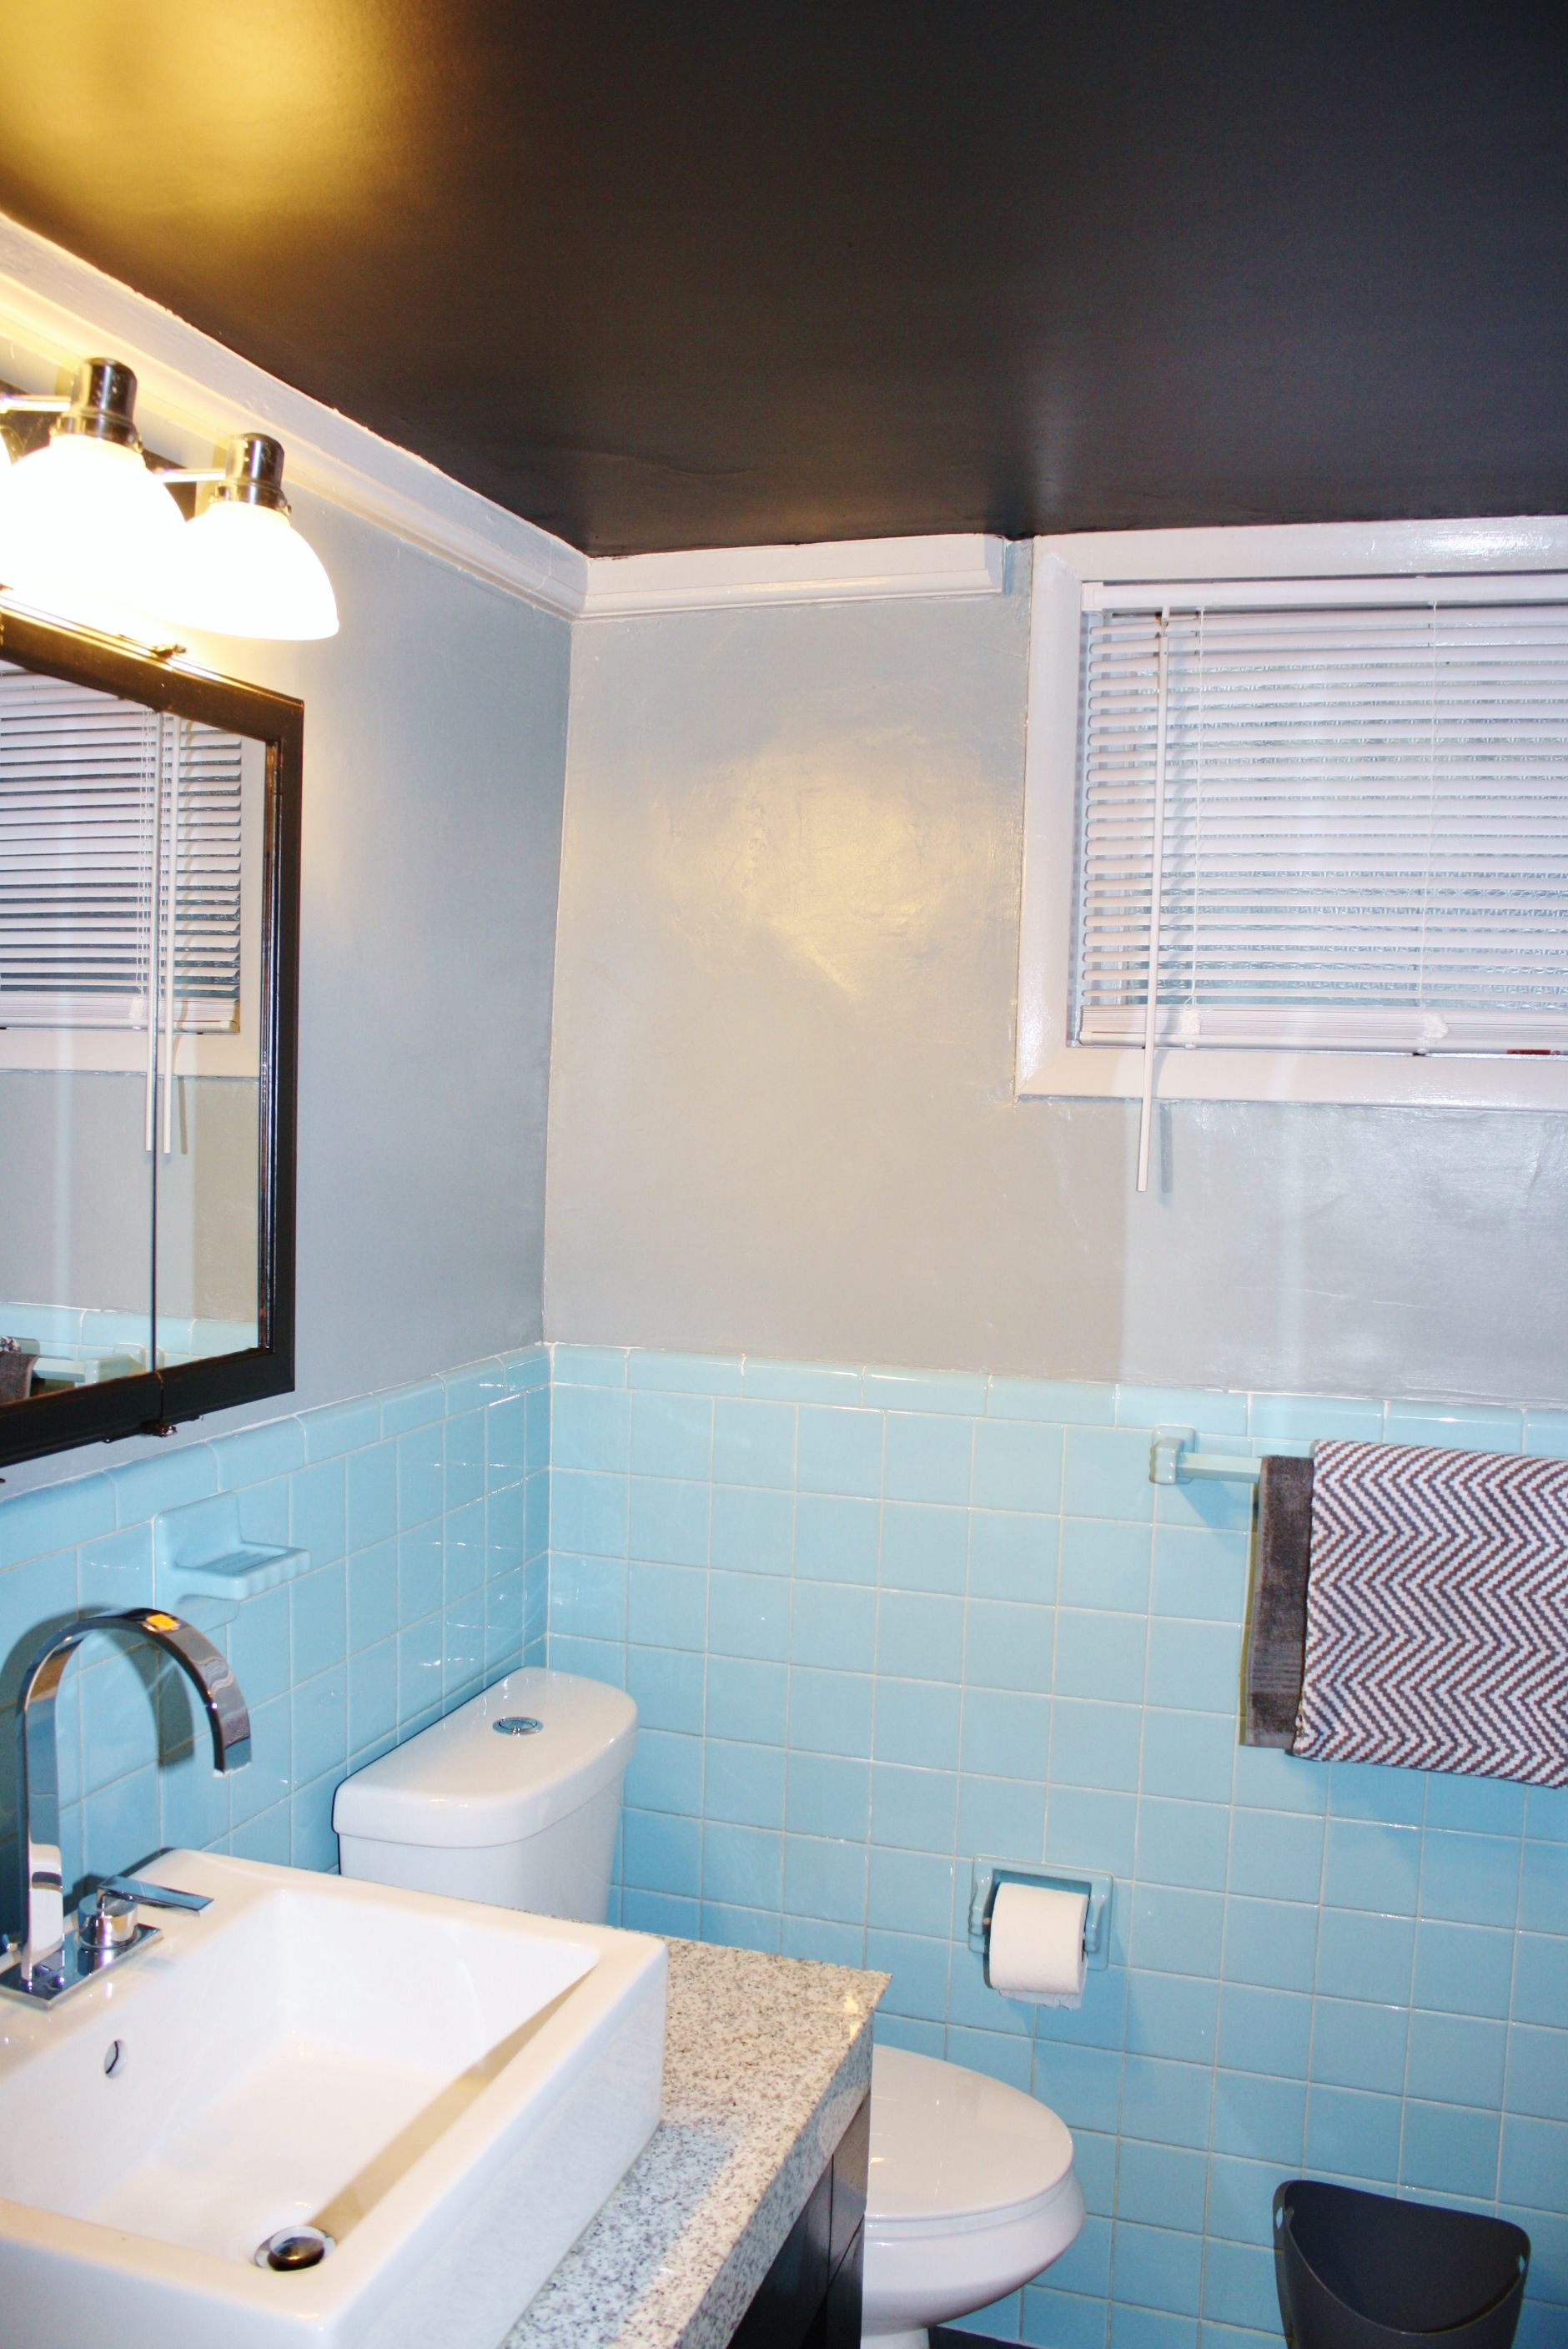 Updated Men S Basement Bathroom Ceiling Painted In Beautiful Black Contrasting The Gray Paint And Be Blue Bathroom Tile Blue Bathroom Decor Basement Bathroom